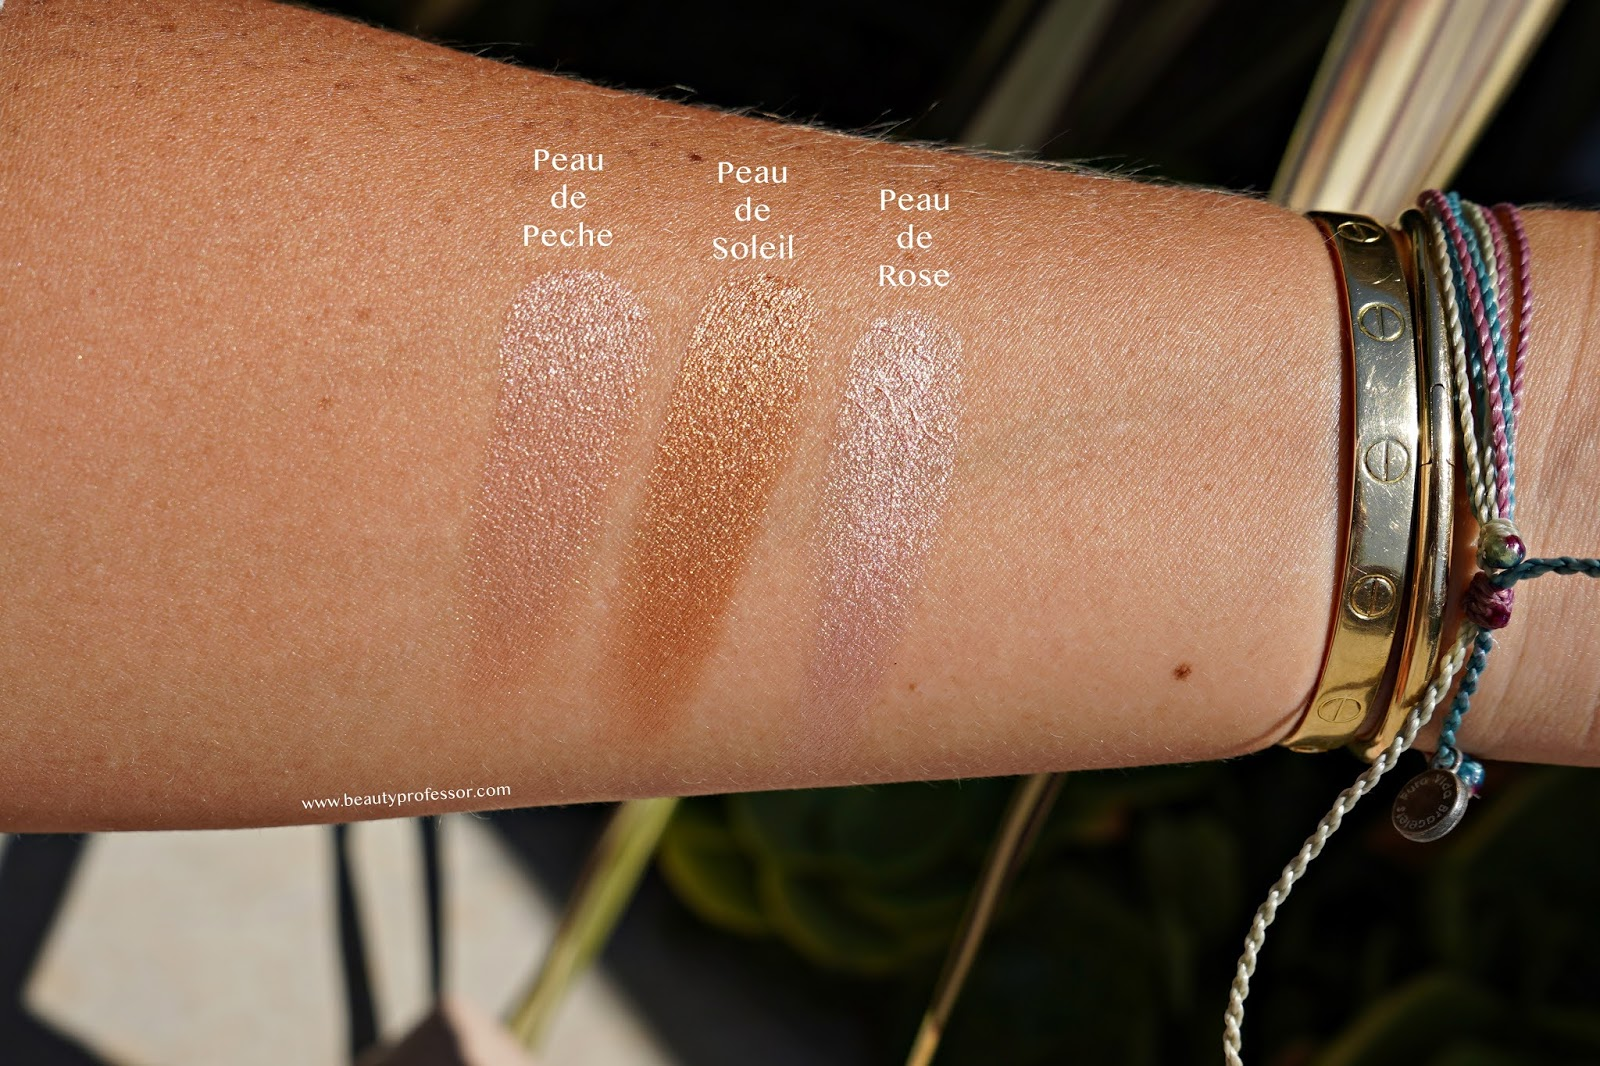 Westman Atelier Superloaded Tinted Highlight swatches